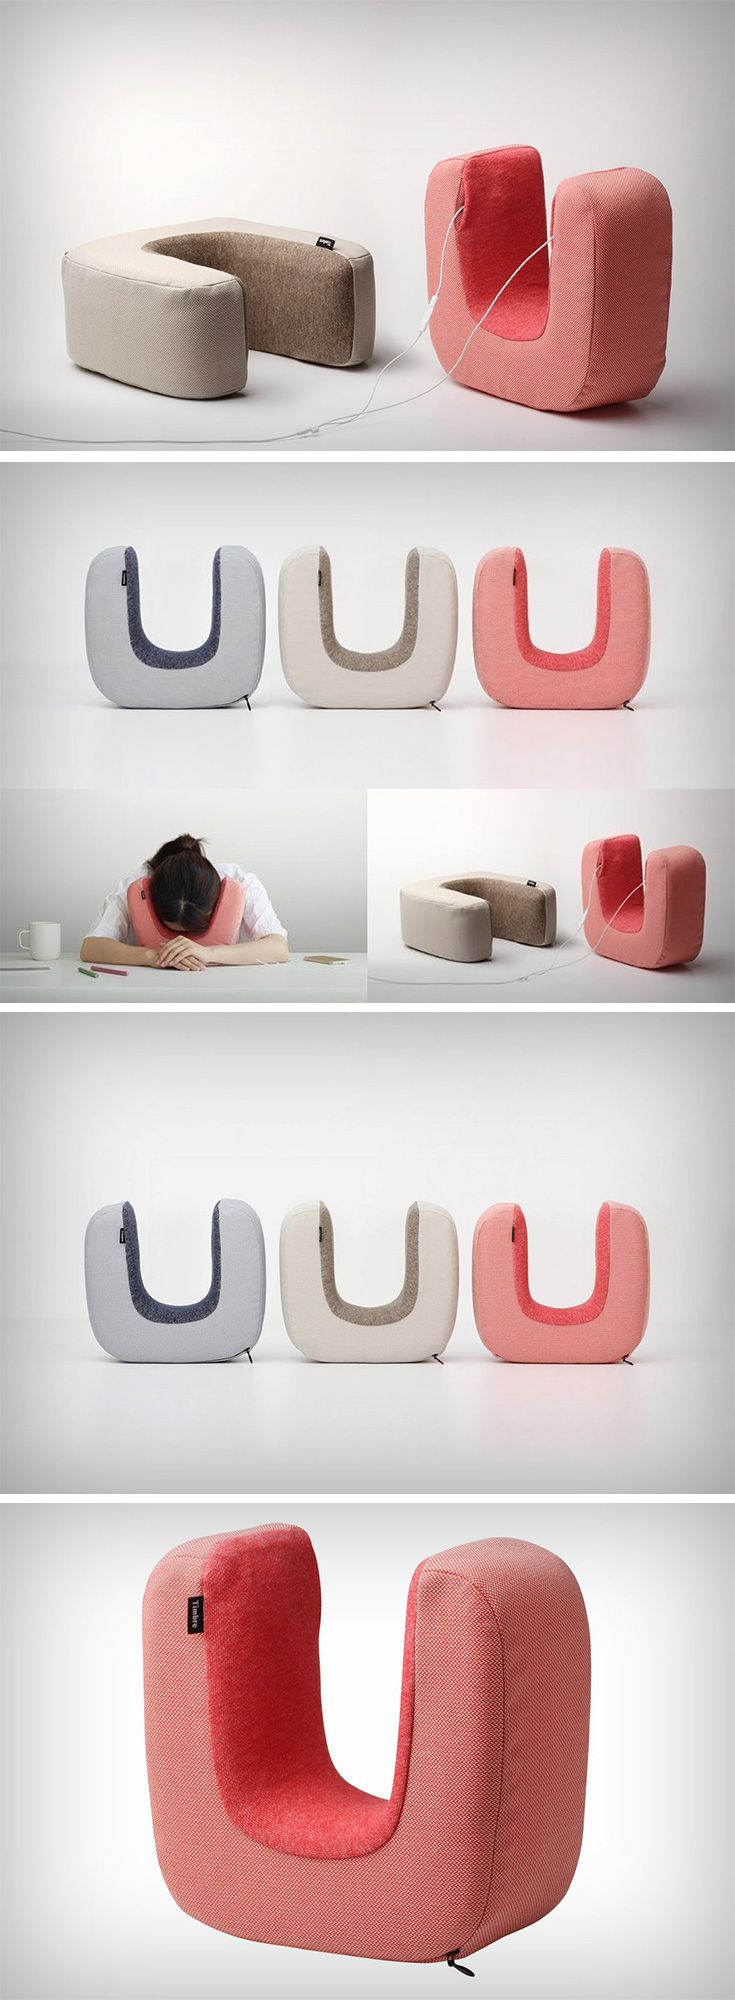 The Ototone pillow lets you take a break and rest your forehead against your workspace. Its horseshoe shape wraps around the sides of your head, not only  keeping your ears warm, but it even allows you slip your earphones into it via sleeves located on both sides. You can then grab a brief session of shut-eye while listening to some soothing music.